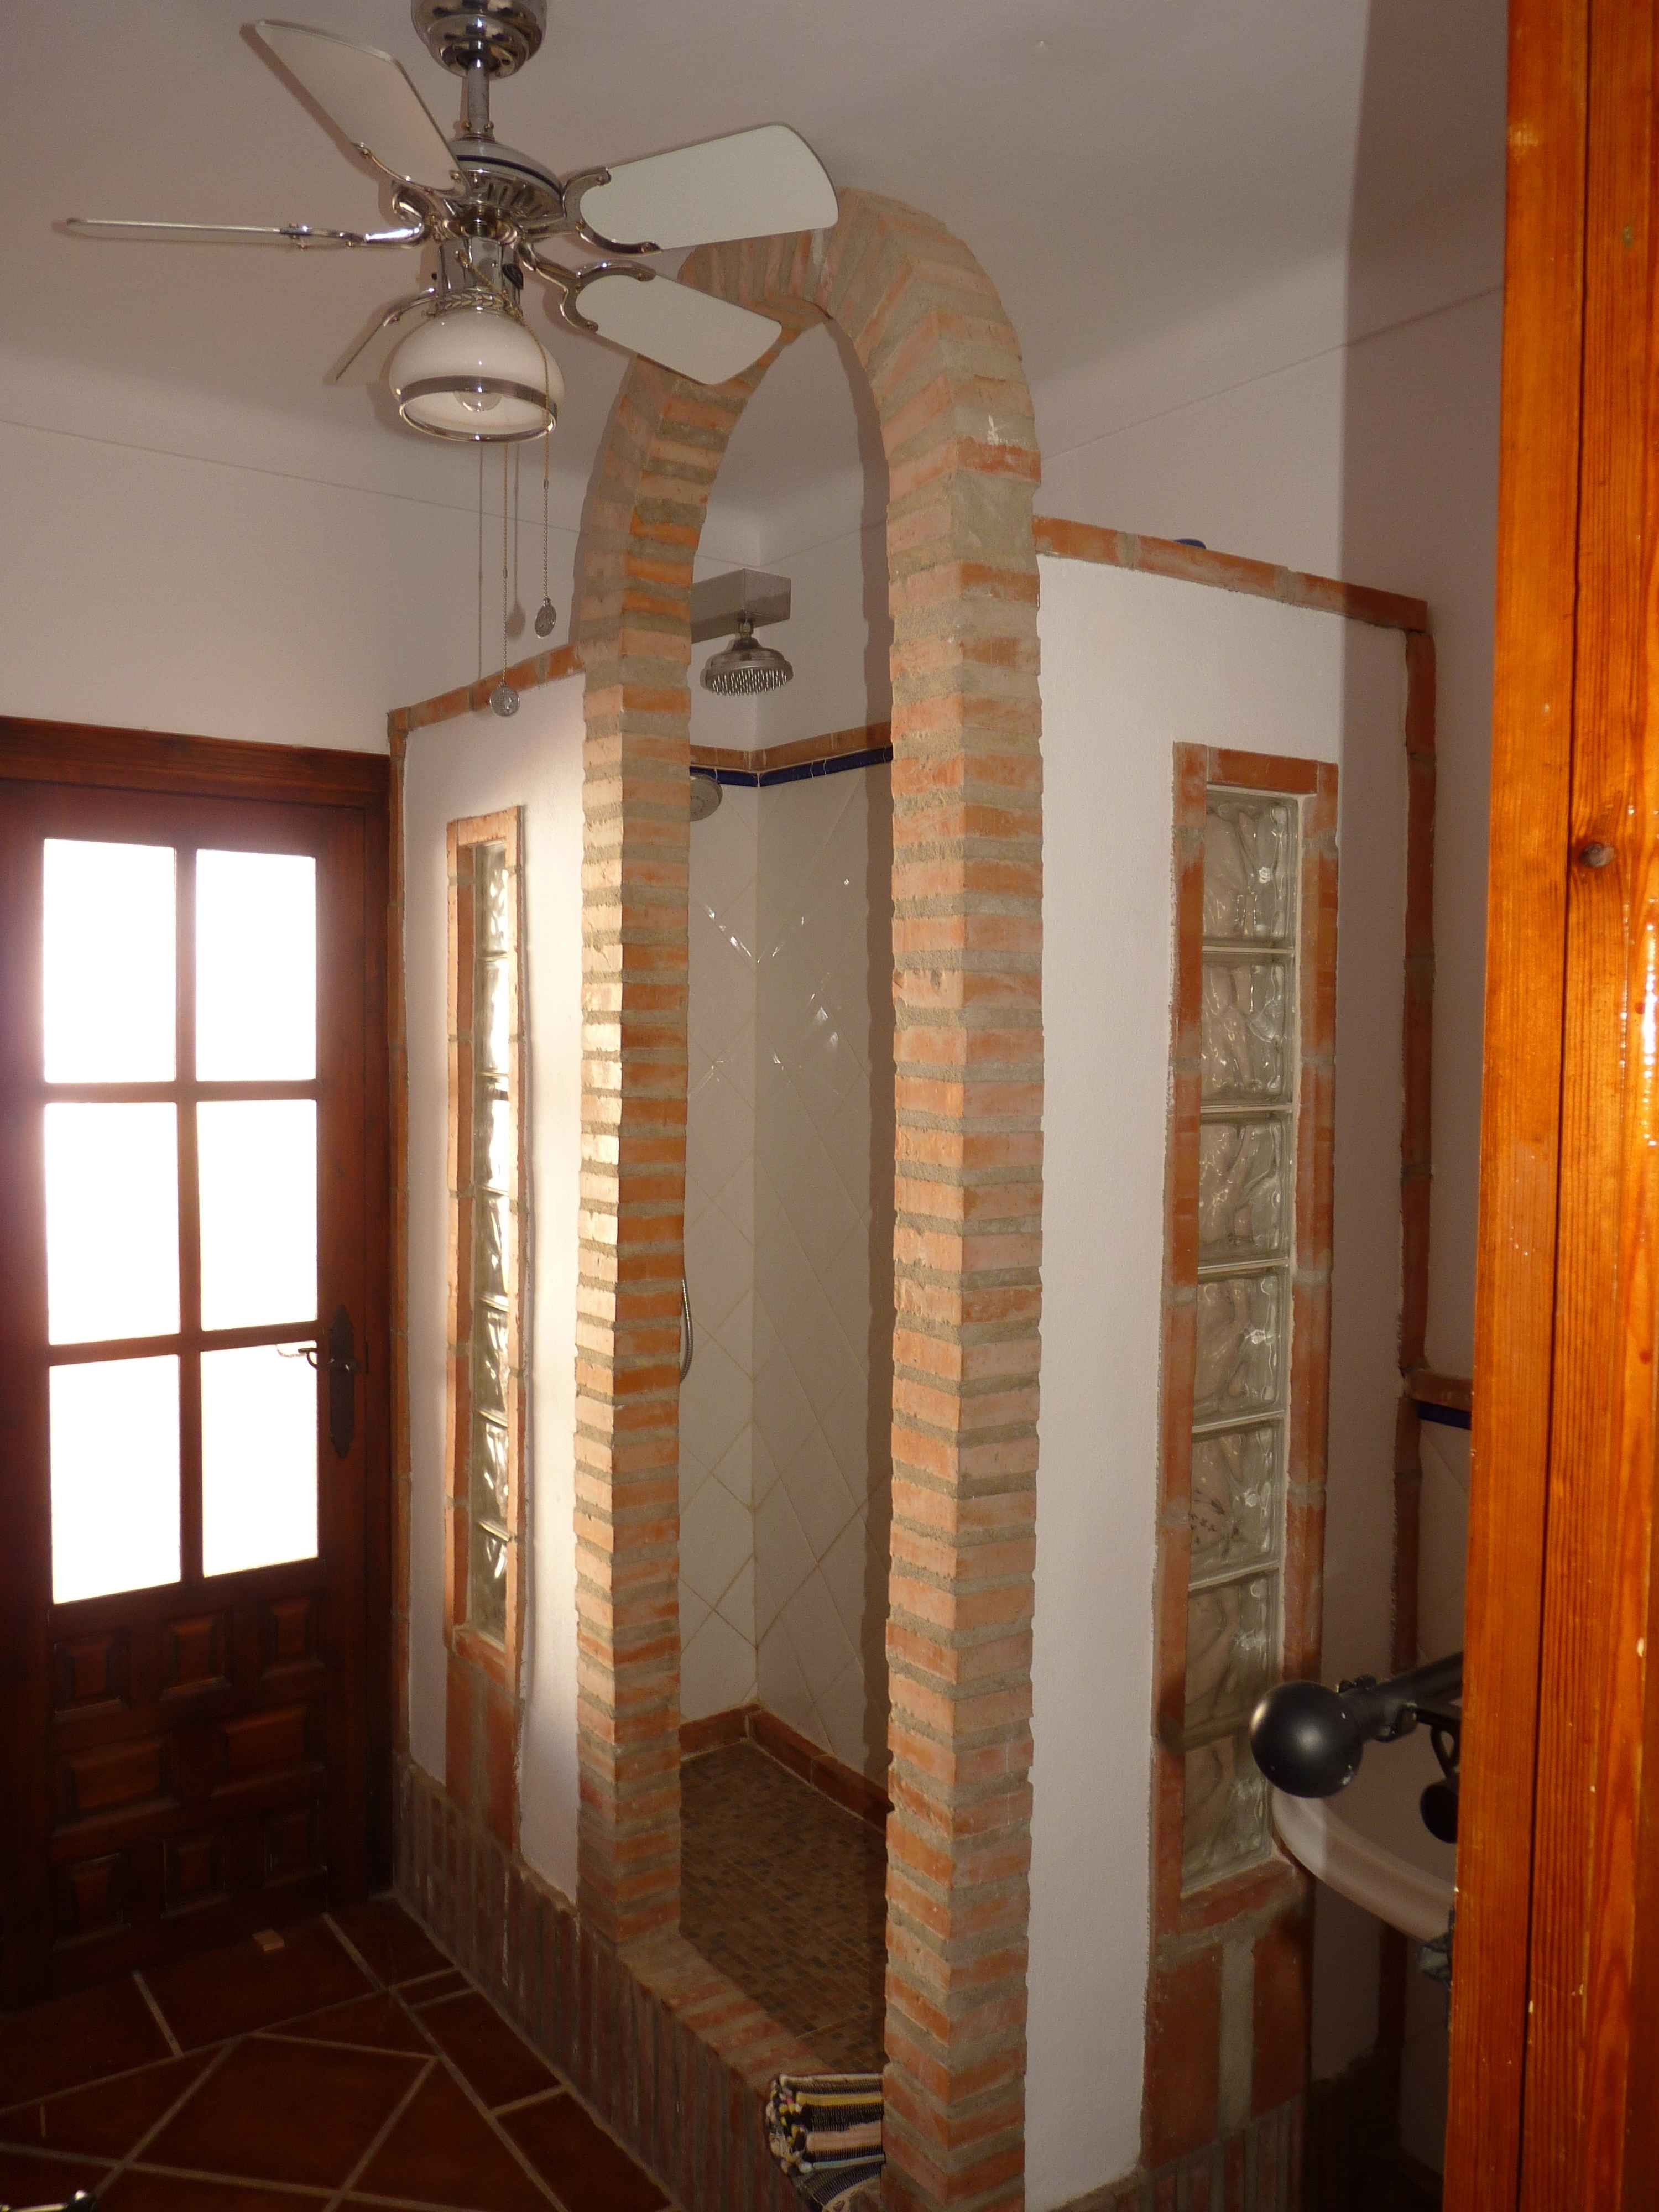 Wonderful Business Opportunity or Unique House To Live In. Antequera.properties/28/23.jpeg